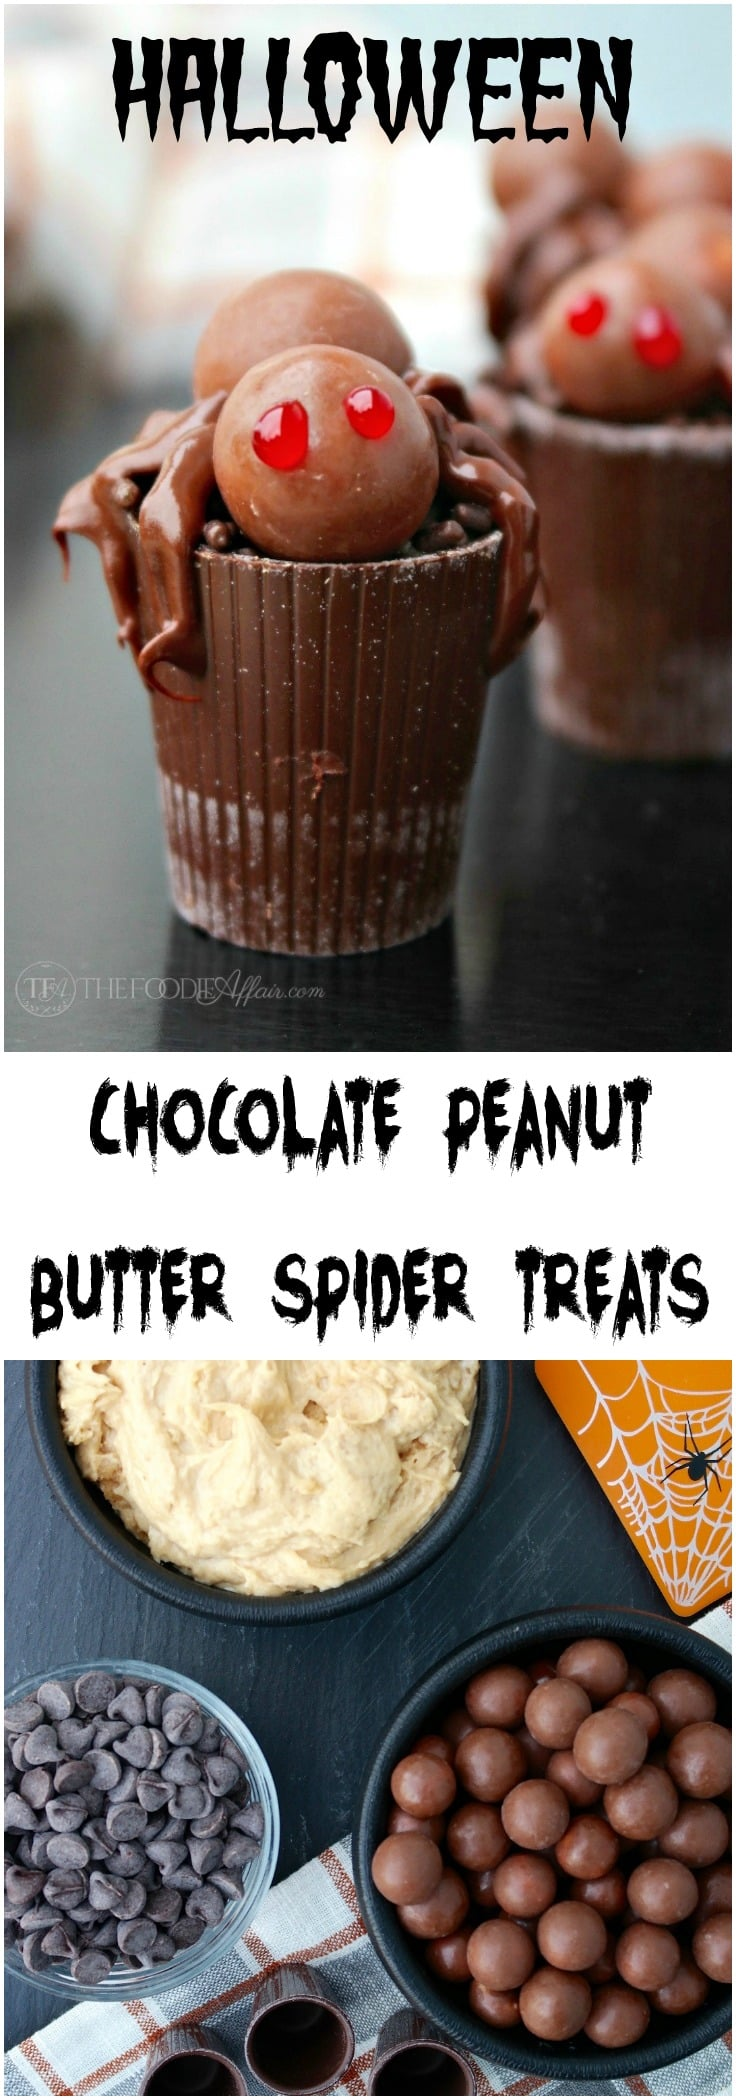 Chocolate Peanut Butter Spider Treats